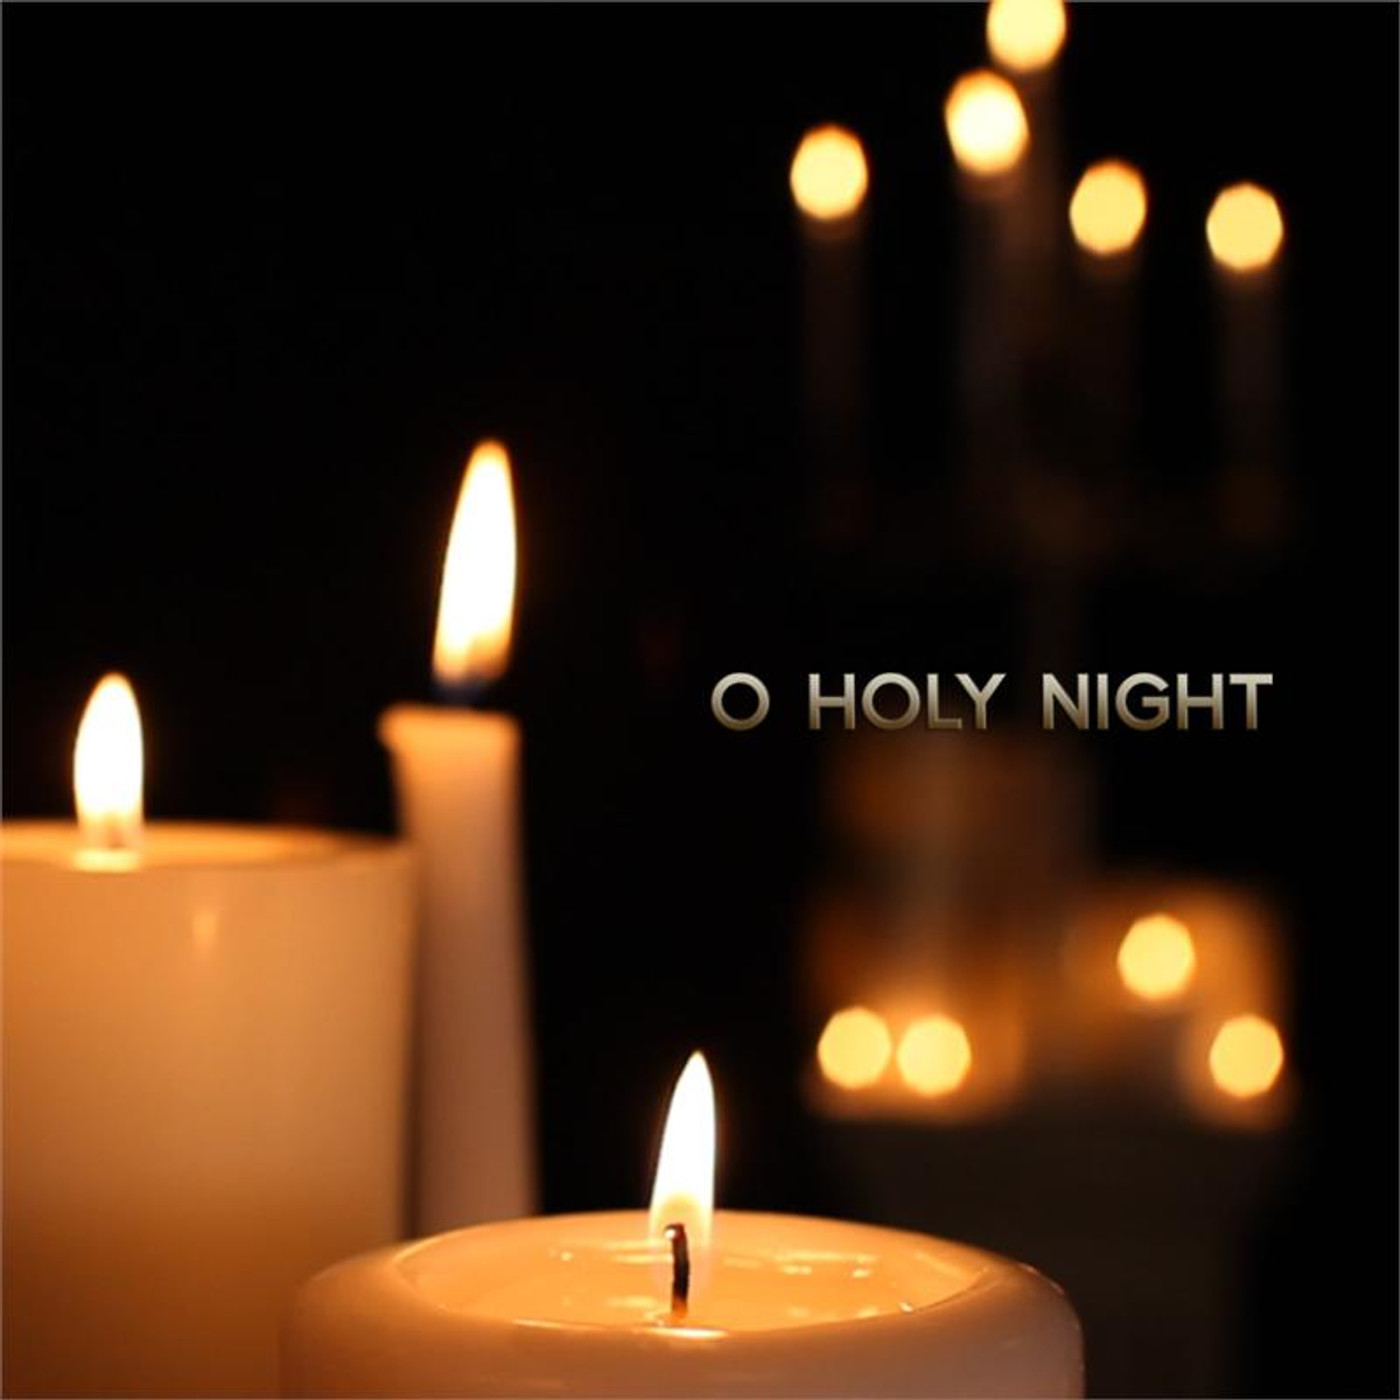 O Holy Night - Video Download